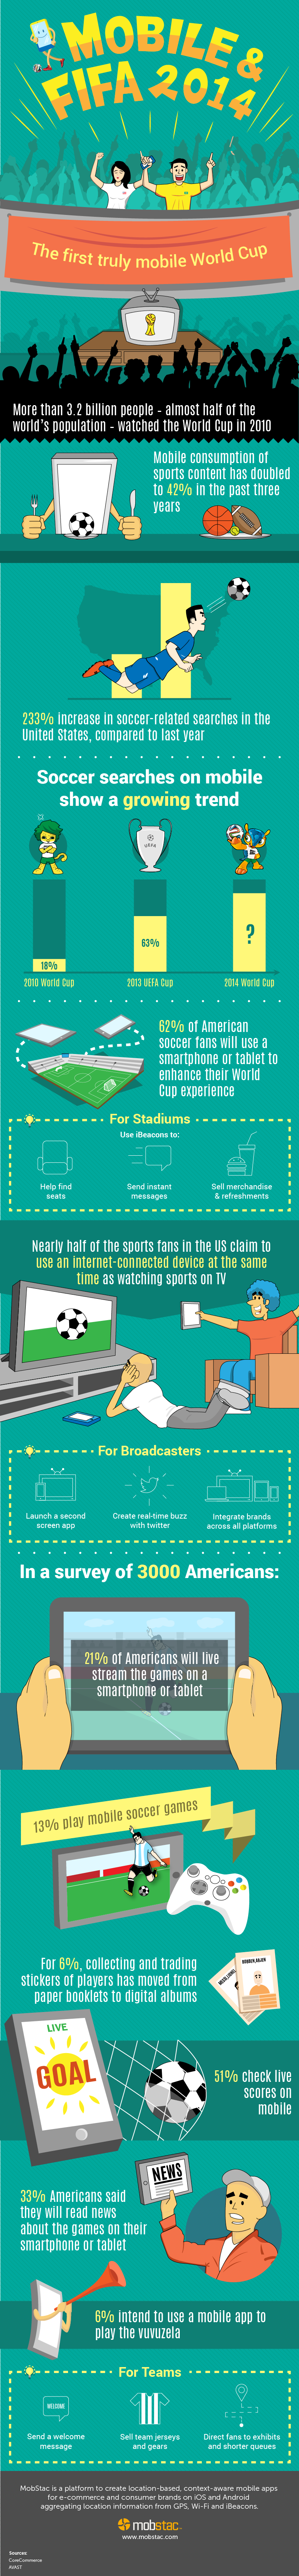 Mobile and FIFA Mobstac Infographic